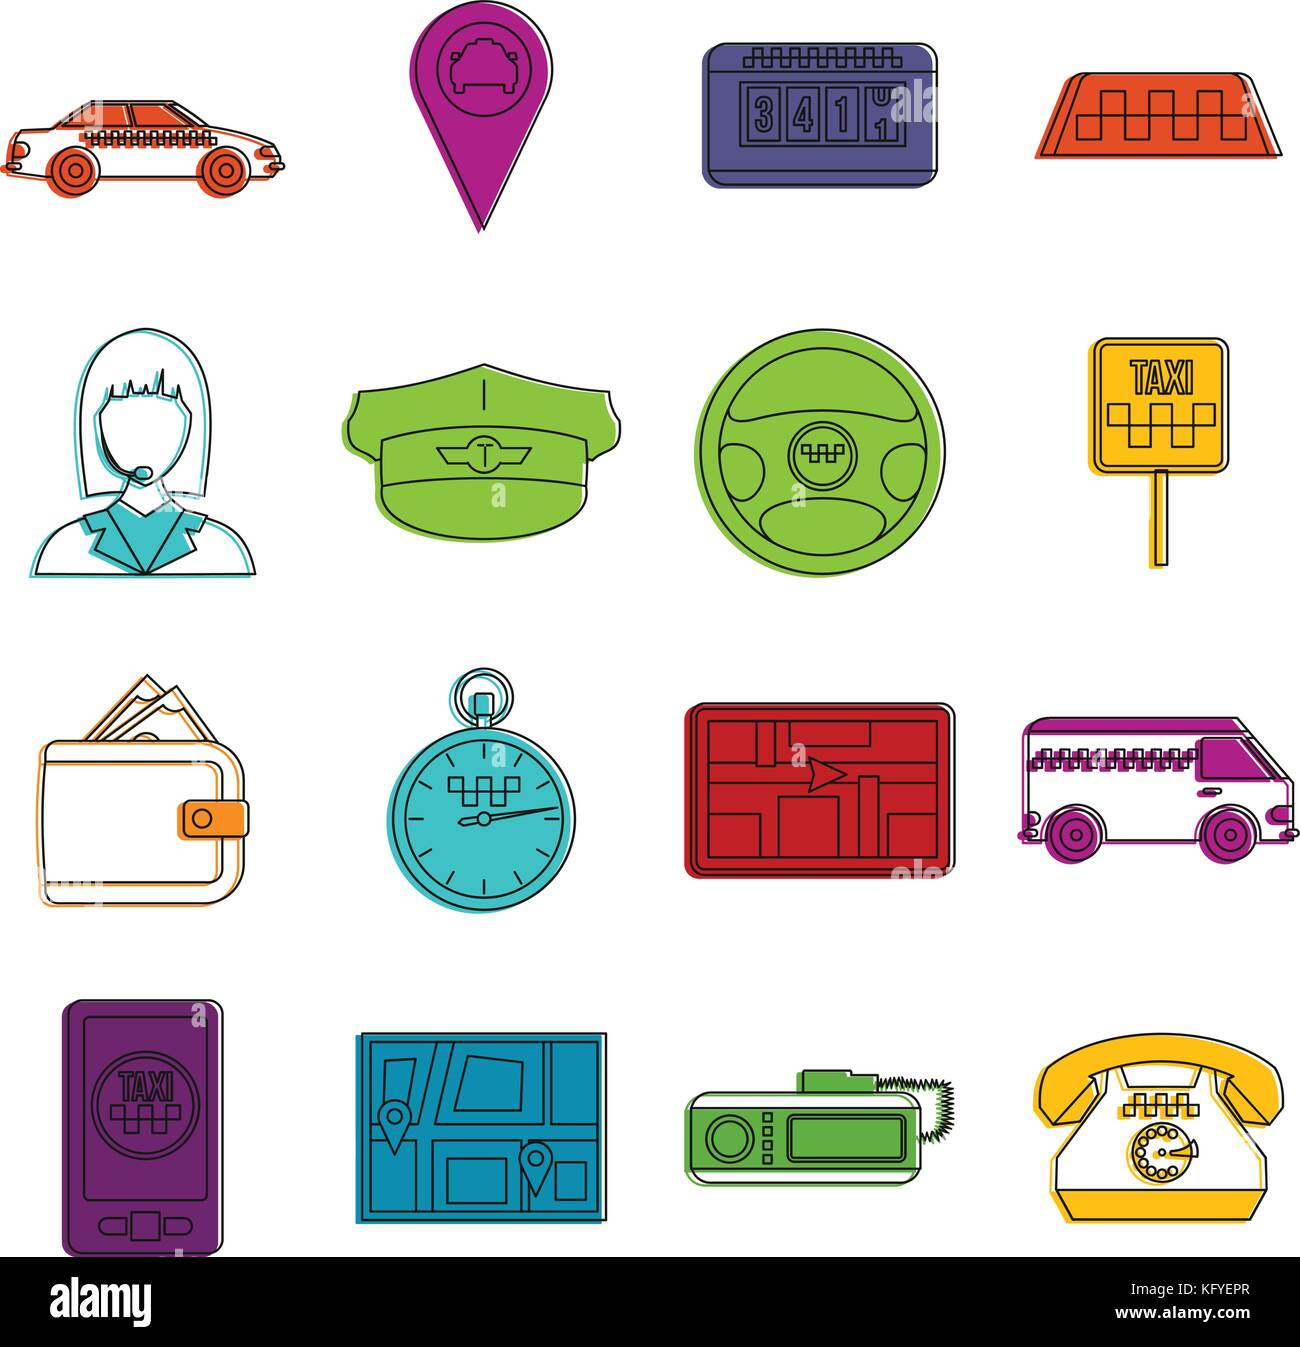 Taxi icons doodle set Stock Vector